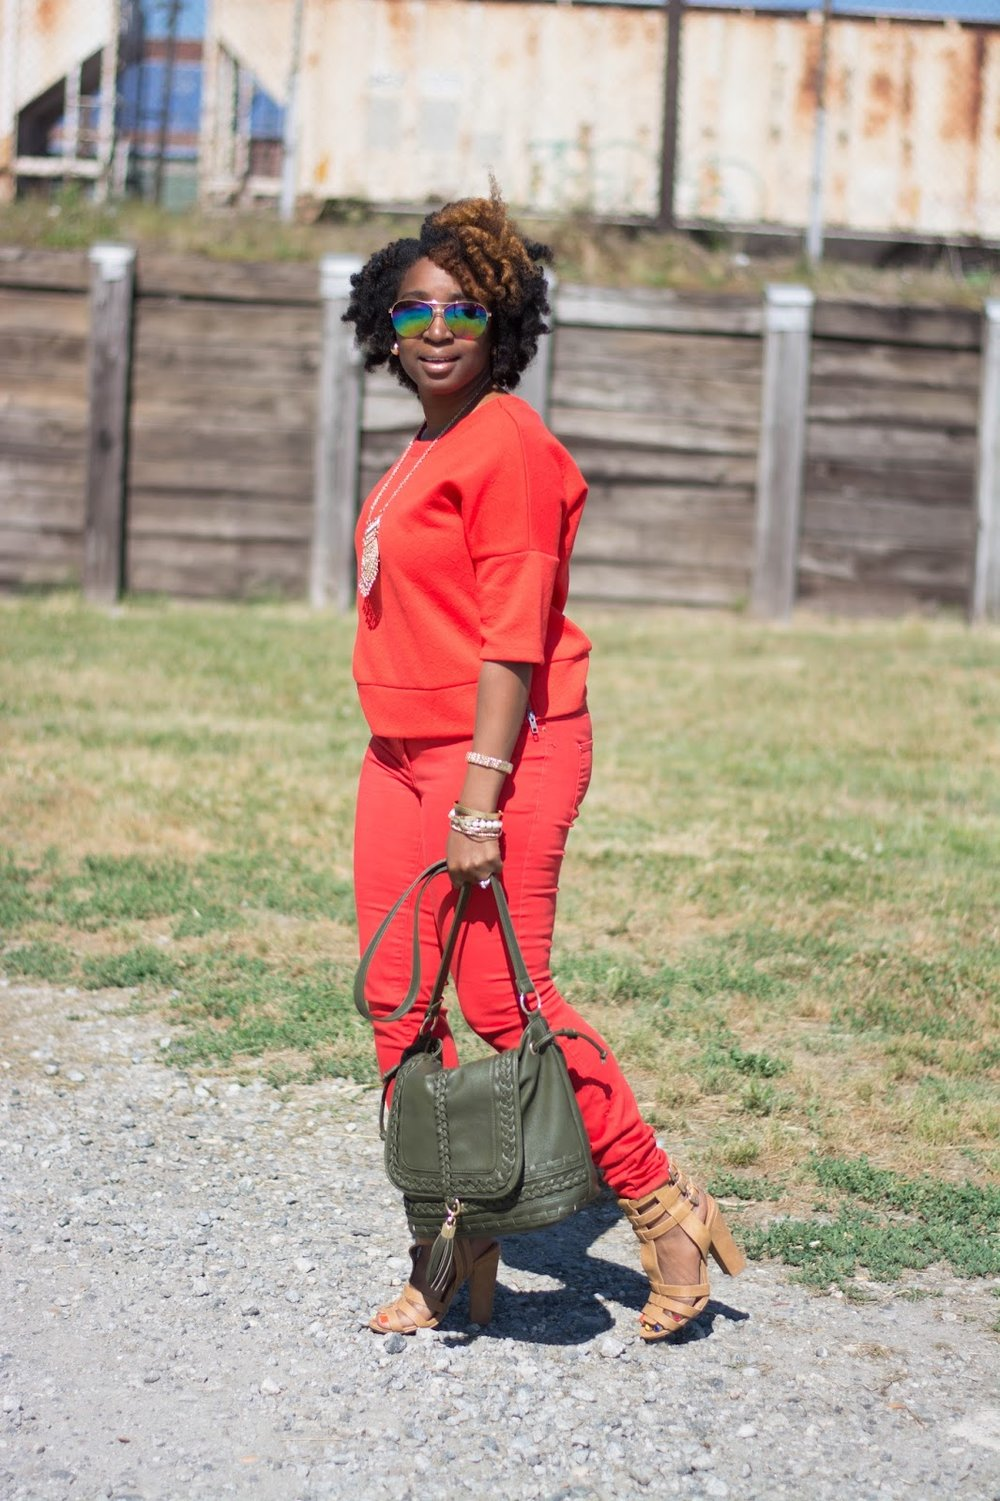 Atlanta stylist, atlanta blogger, black blogger, black girls rock, monochrome, orange fashion, atlanta street style, mirrored glasses, charlotte russe sandals, shoedazzle handbag, handbag with tassle, natural hair fashion, atlanta street style, atlanta style influencer, forever21 accessories, style blogger, black girl killing it, gold accessories, thrifted fashion, thrifting atlanta, thrift style